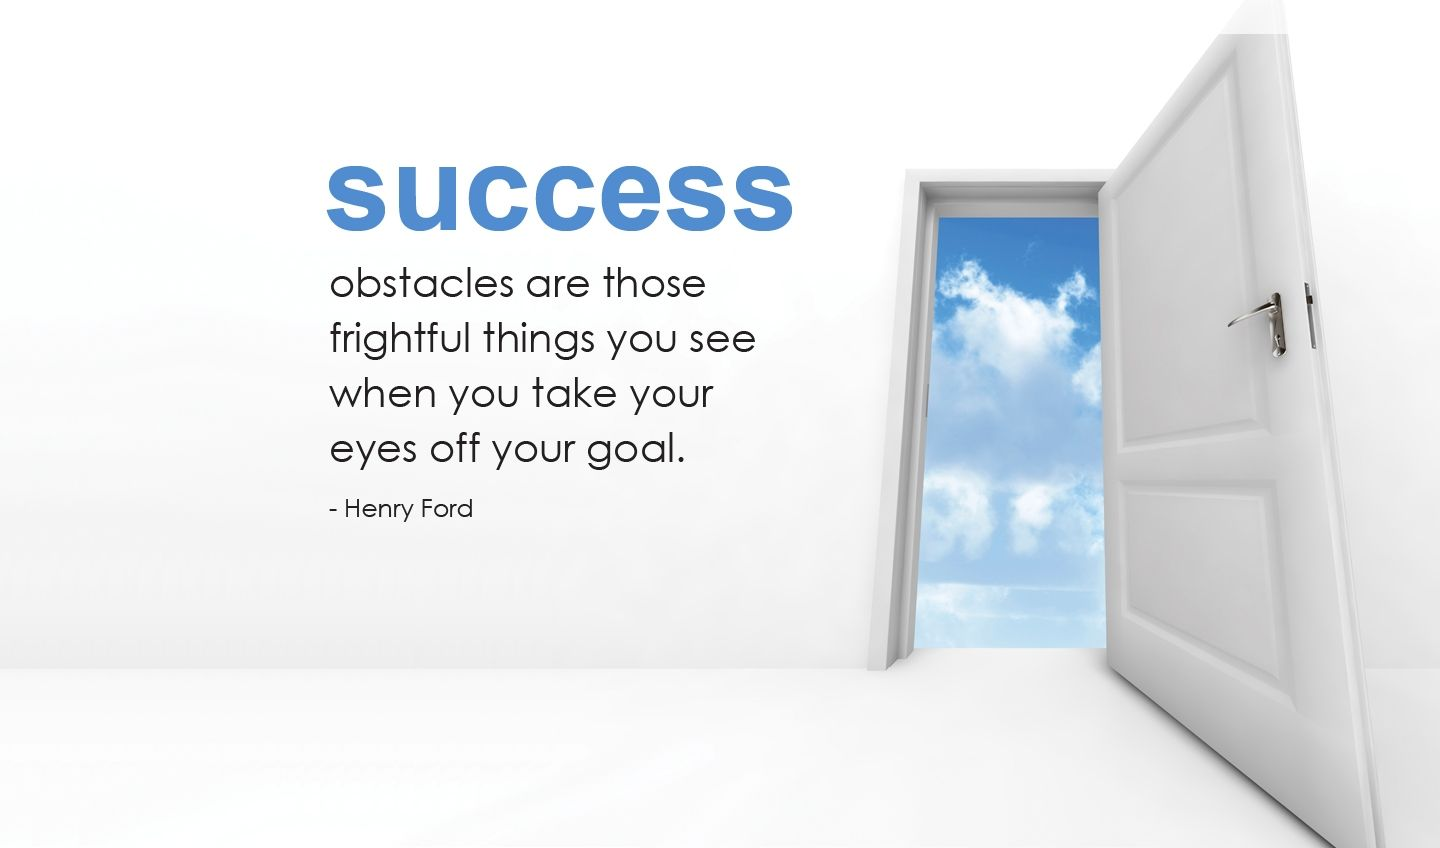 Image result for obstacles are frightful things see when